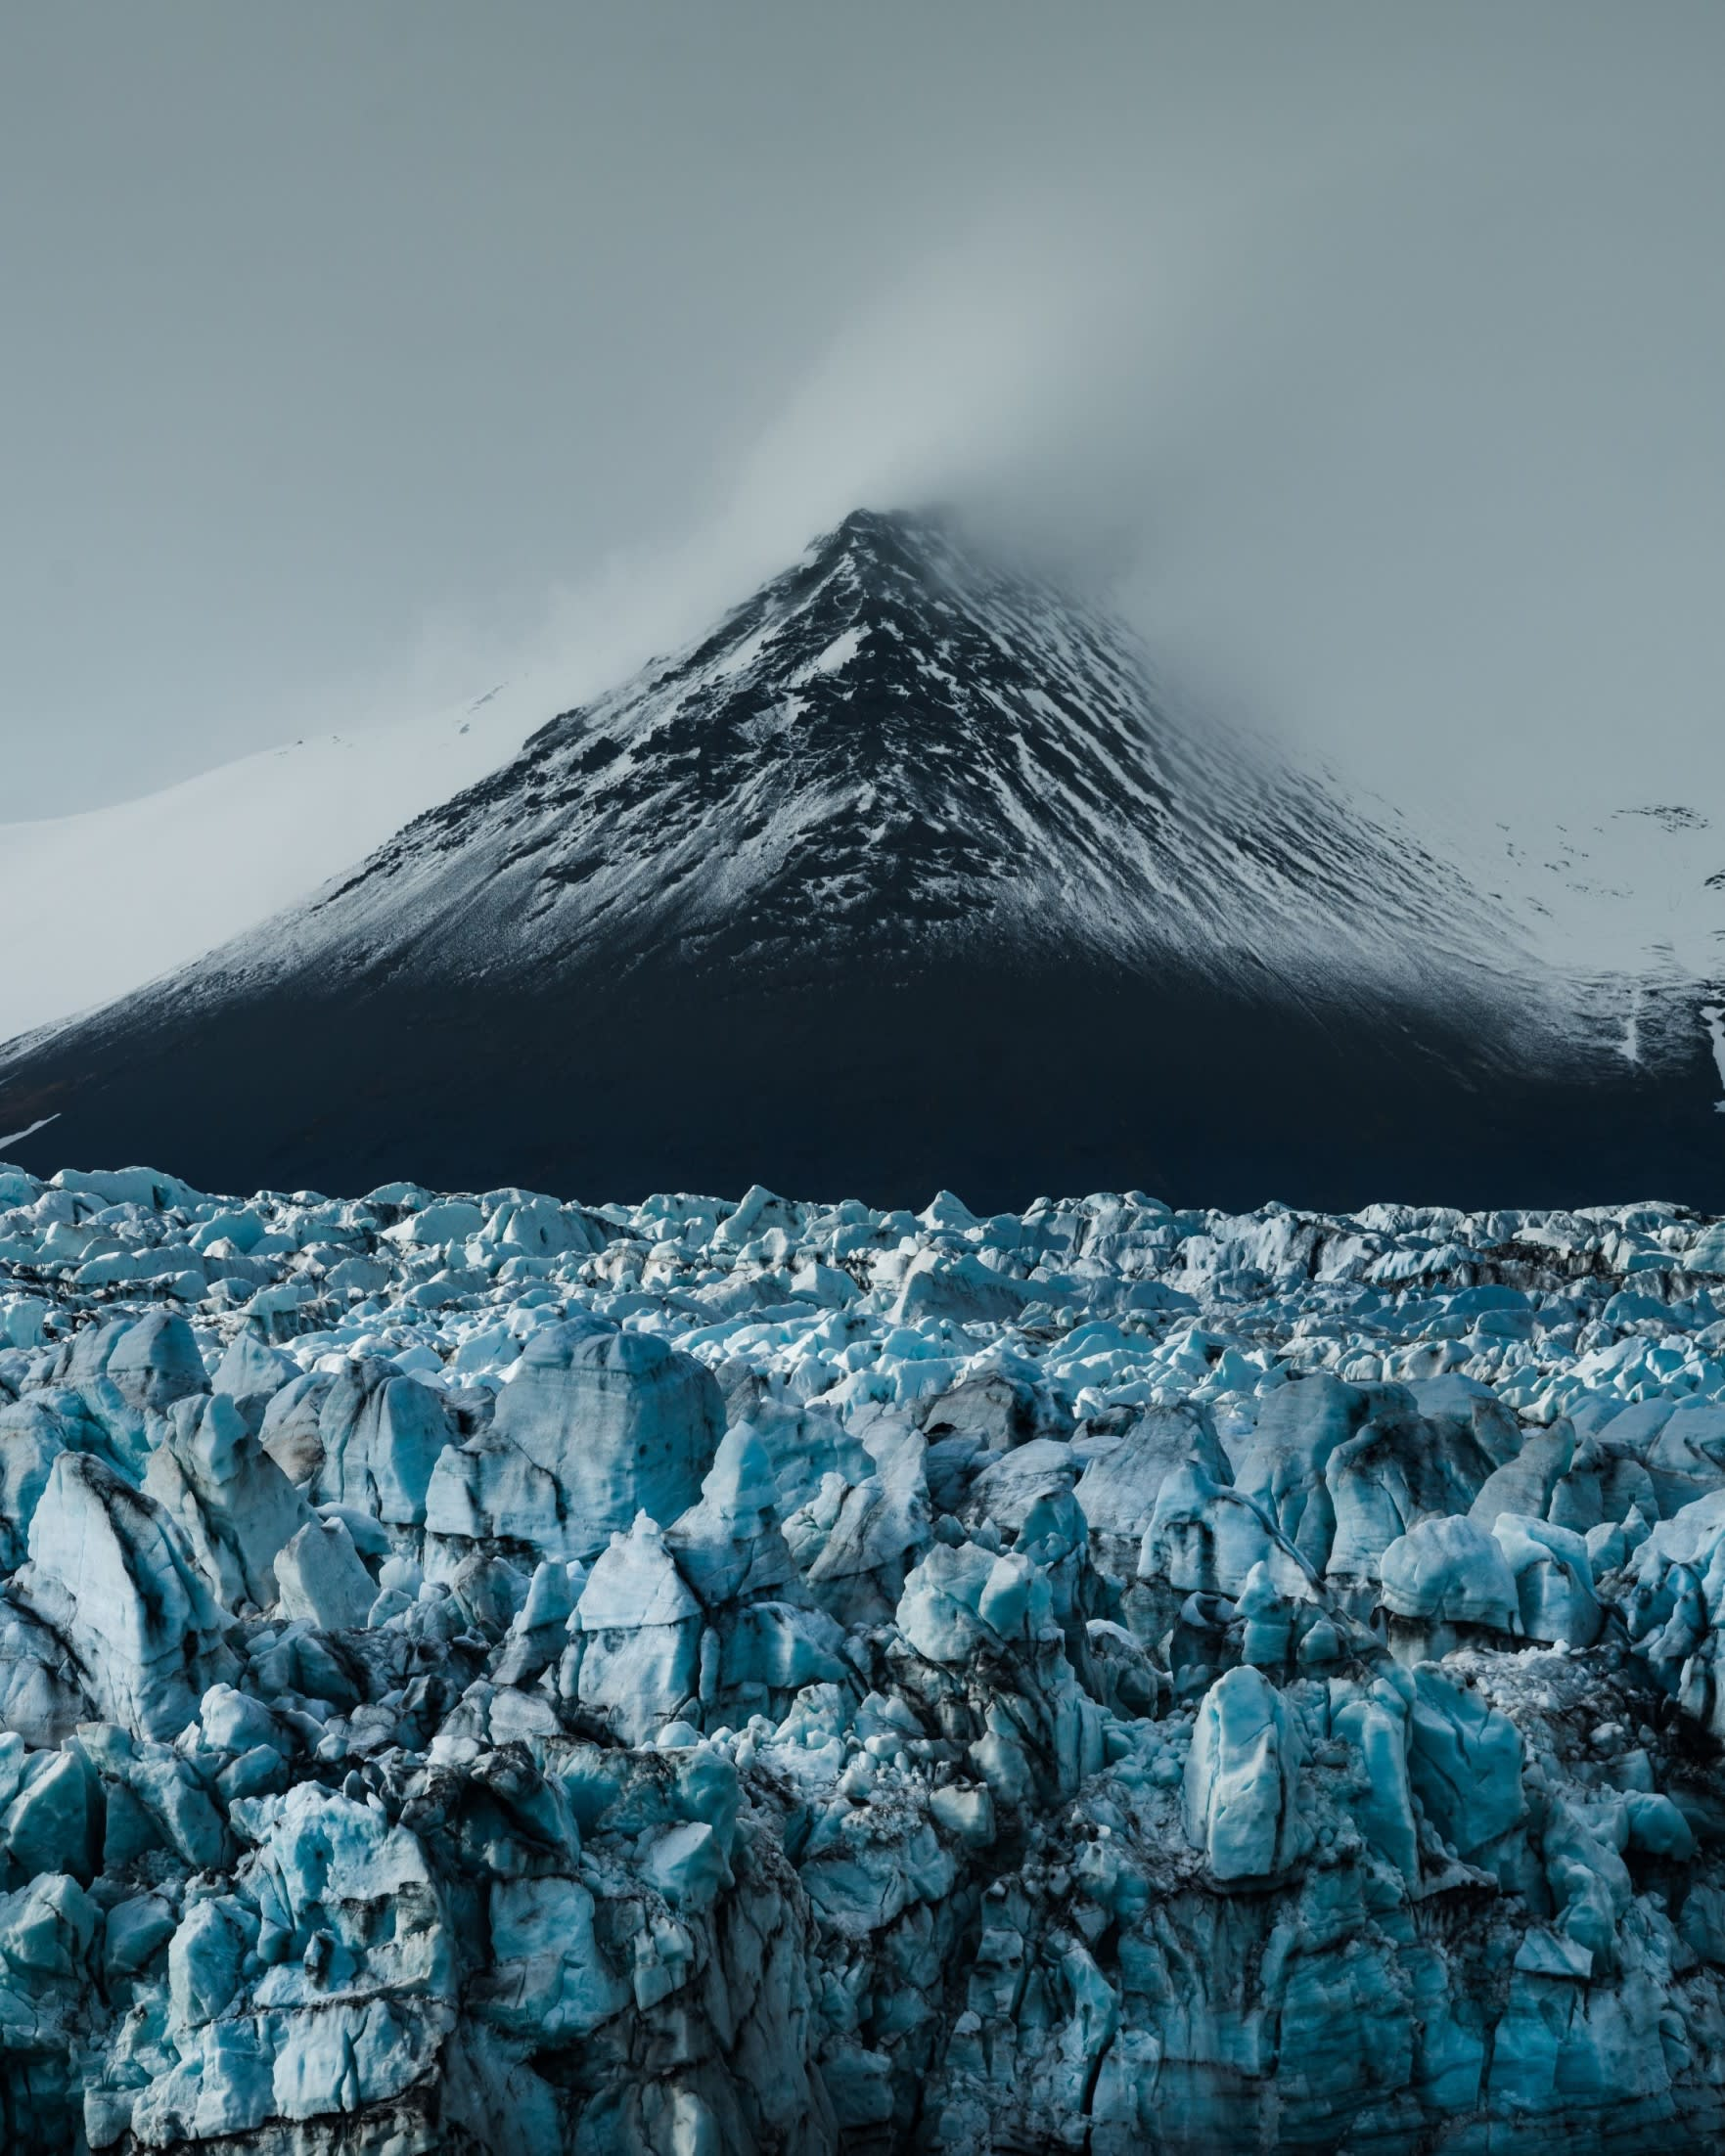 The bright blue Vatnajokull glacier in Iceland set against a snow covered mountain